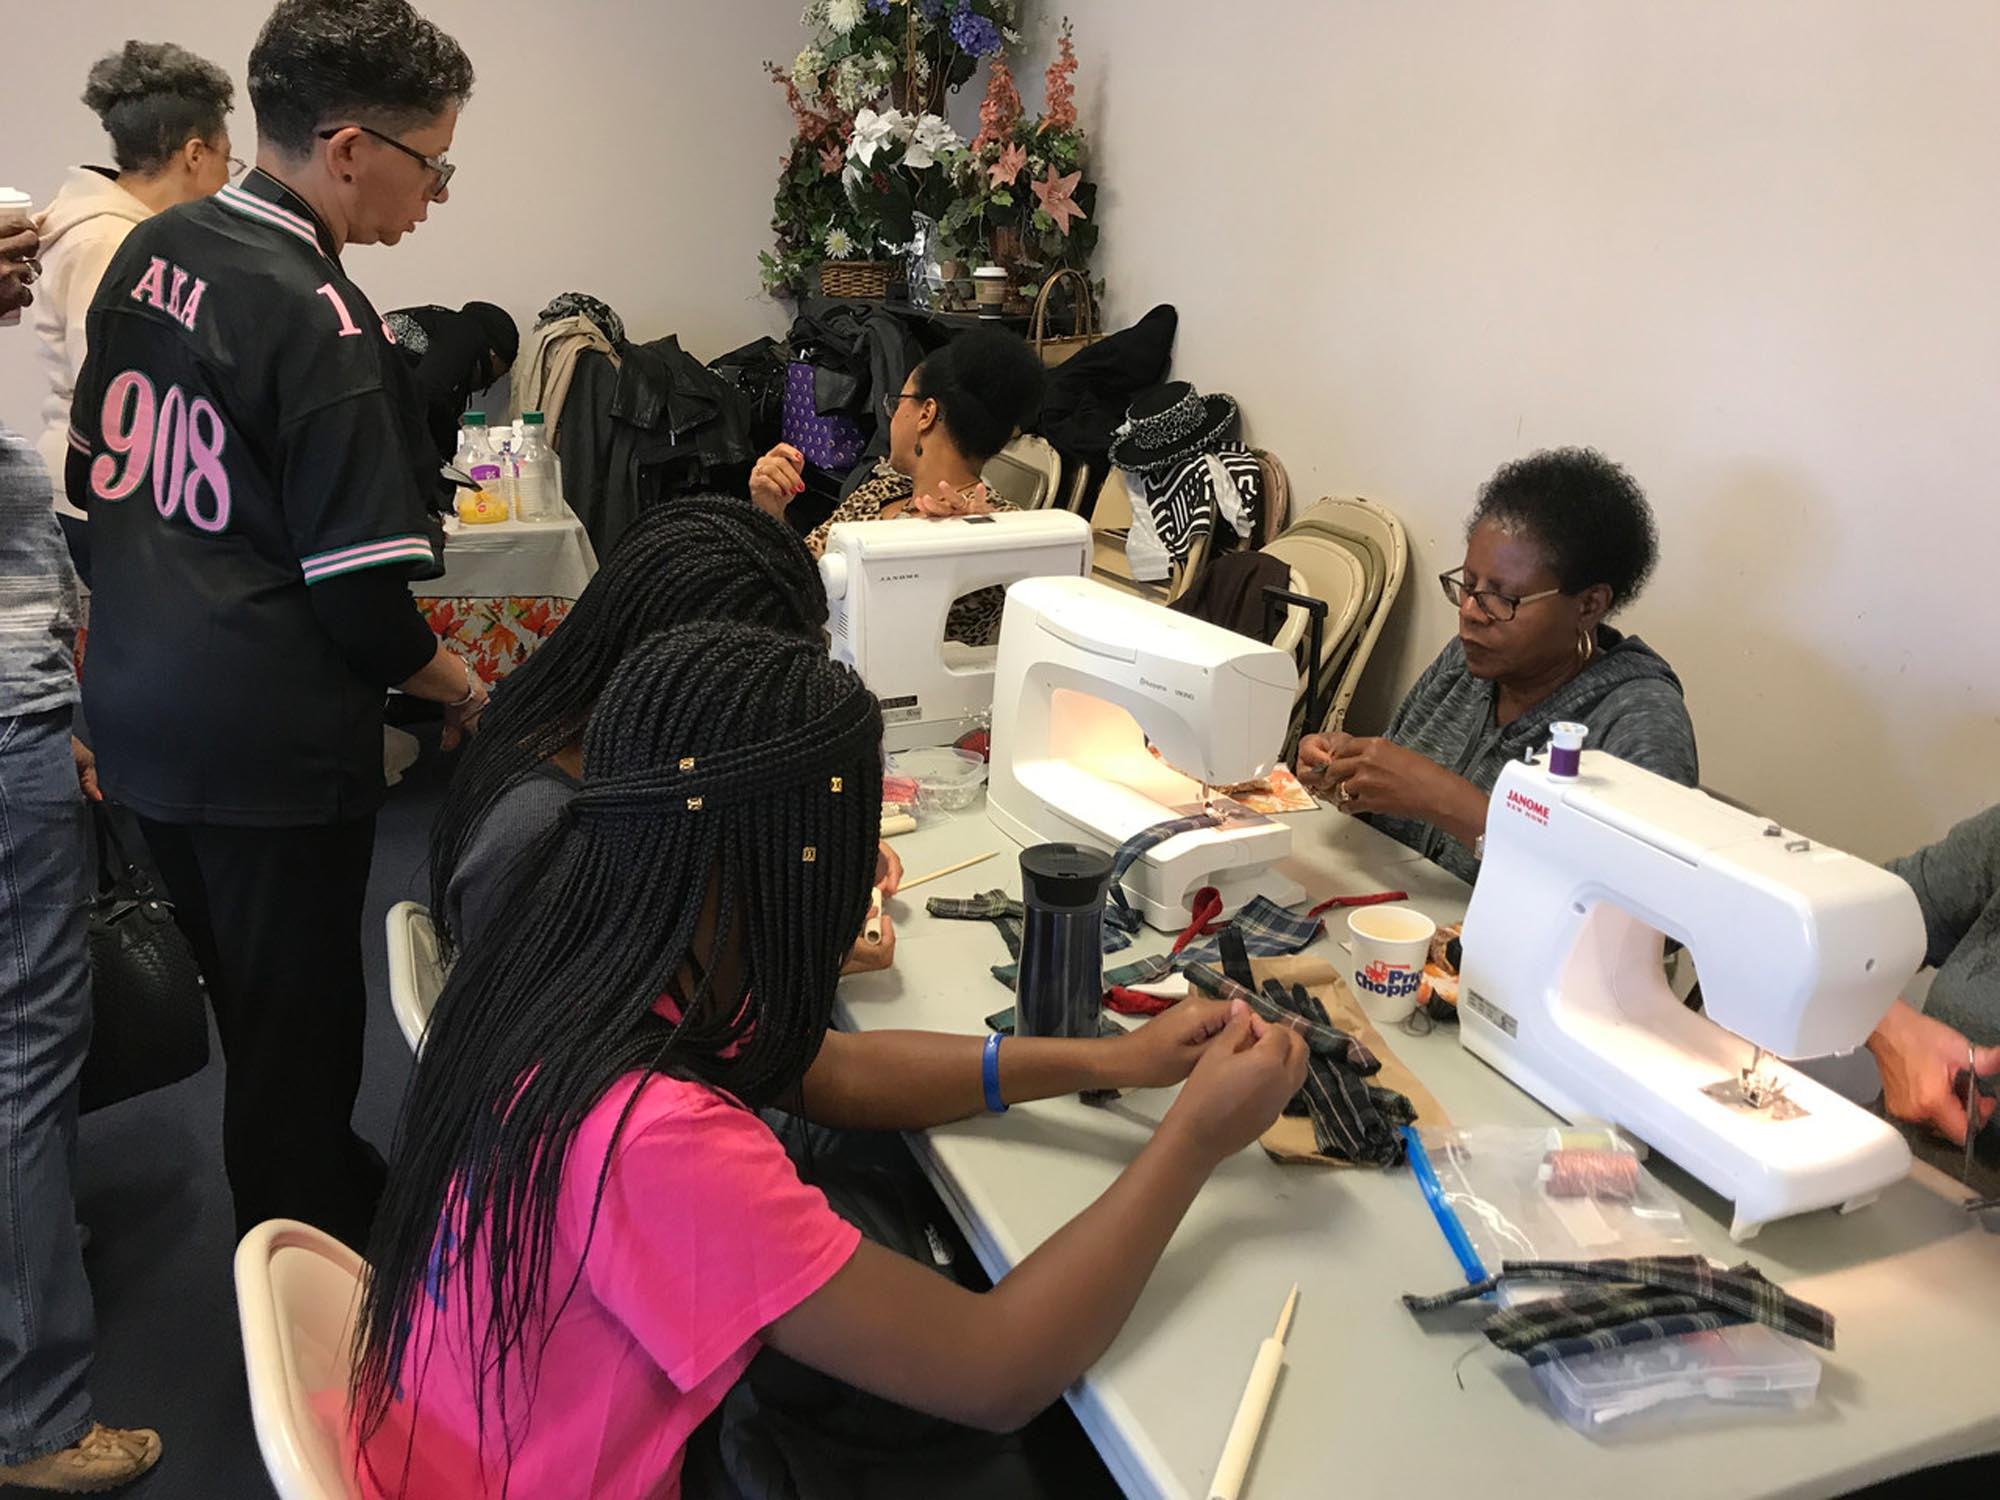 a group of women in a room closely sewing together on multiple white sewing machines